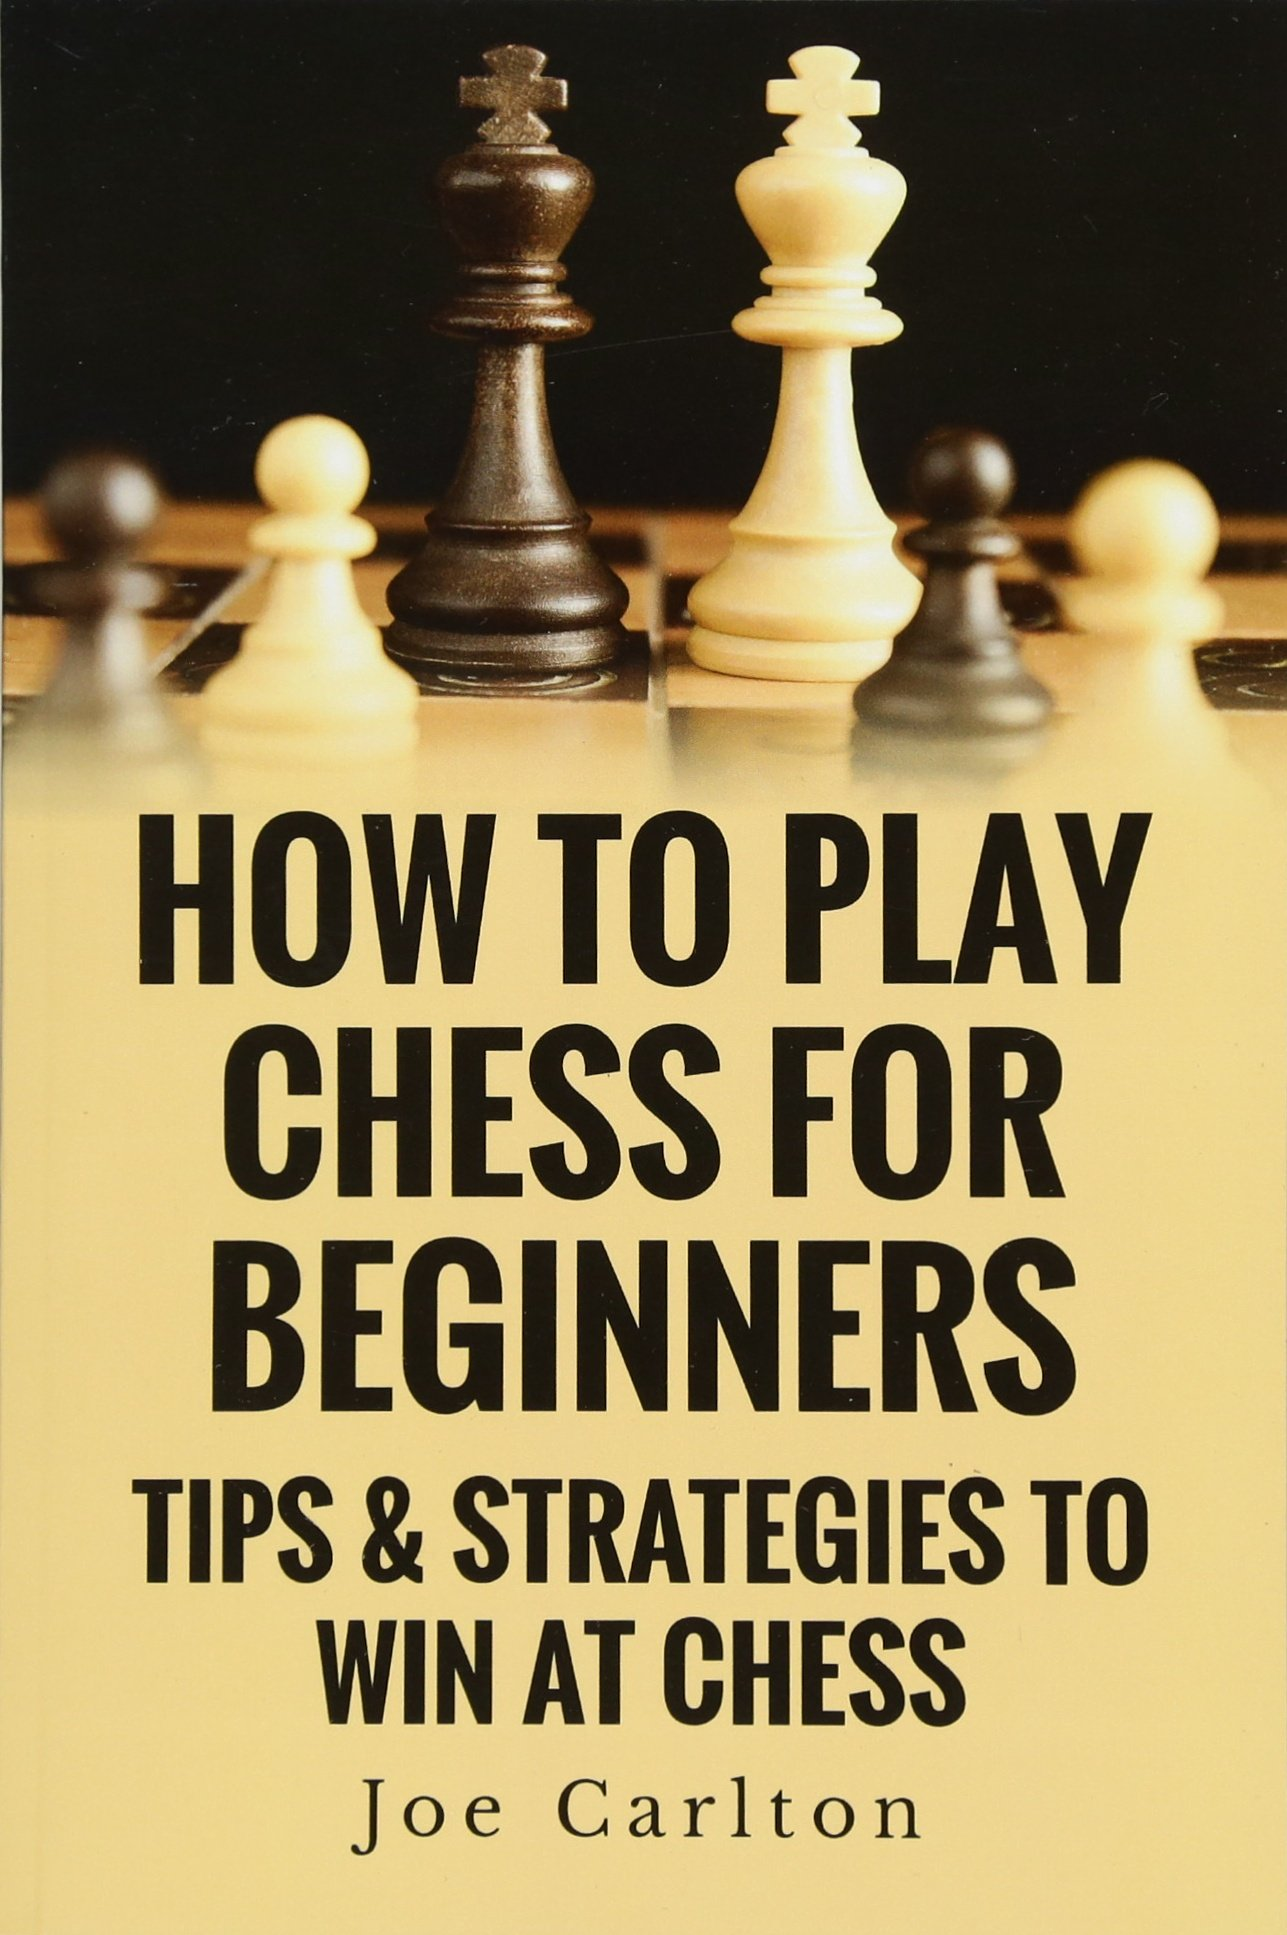 How to learn to play chess: tips for beginners 84